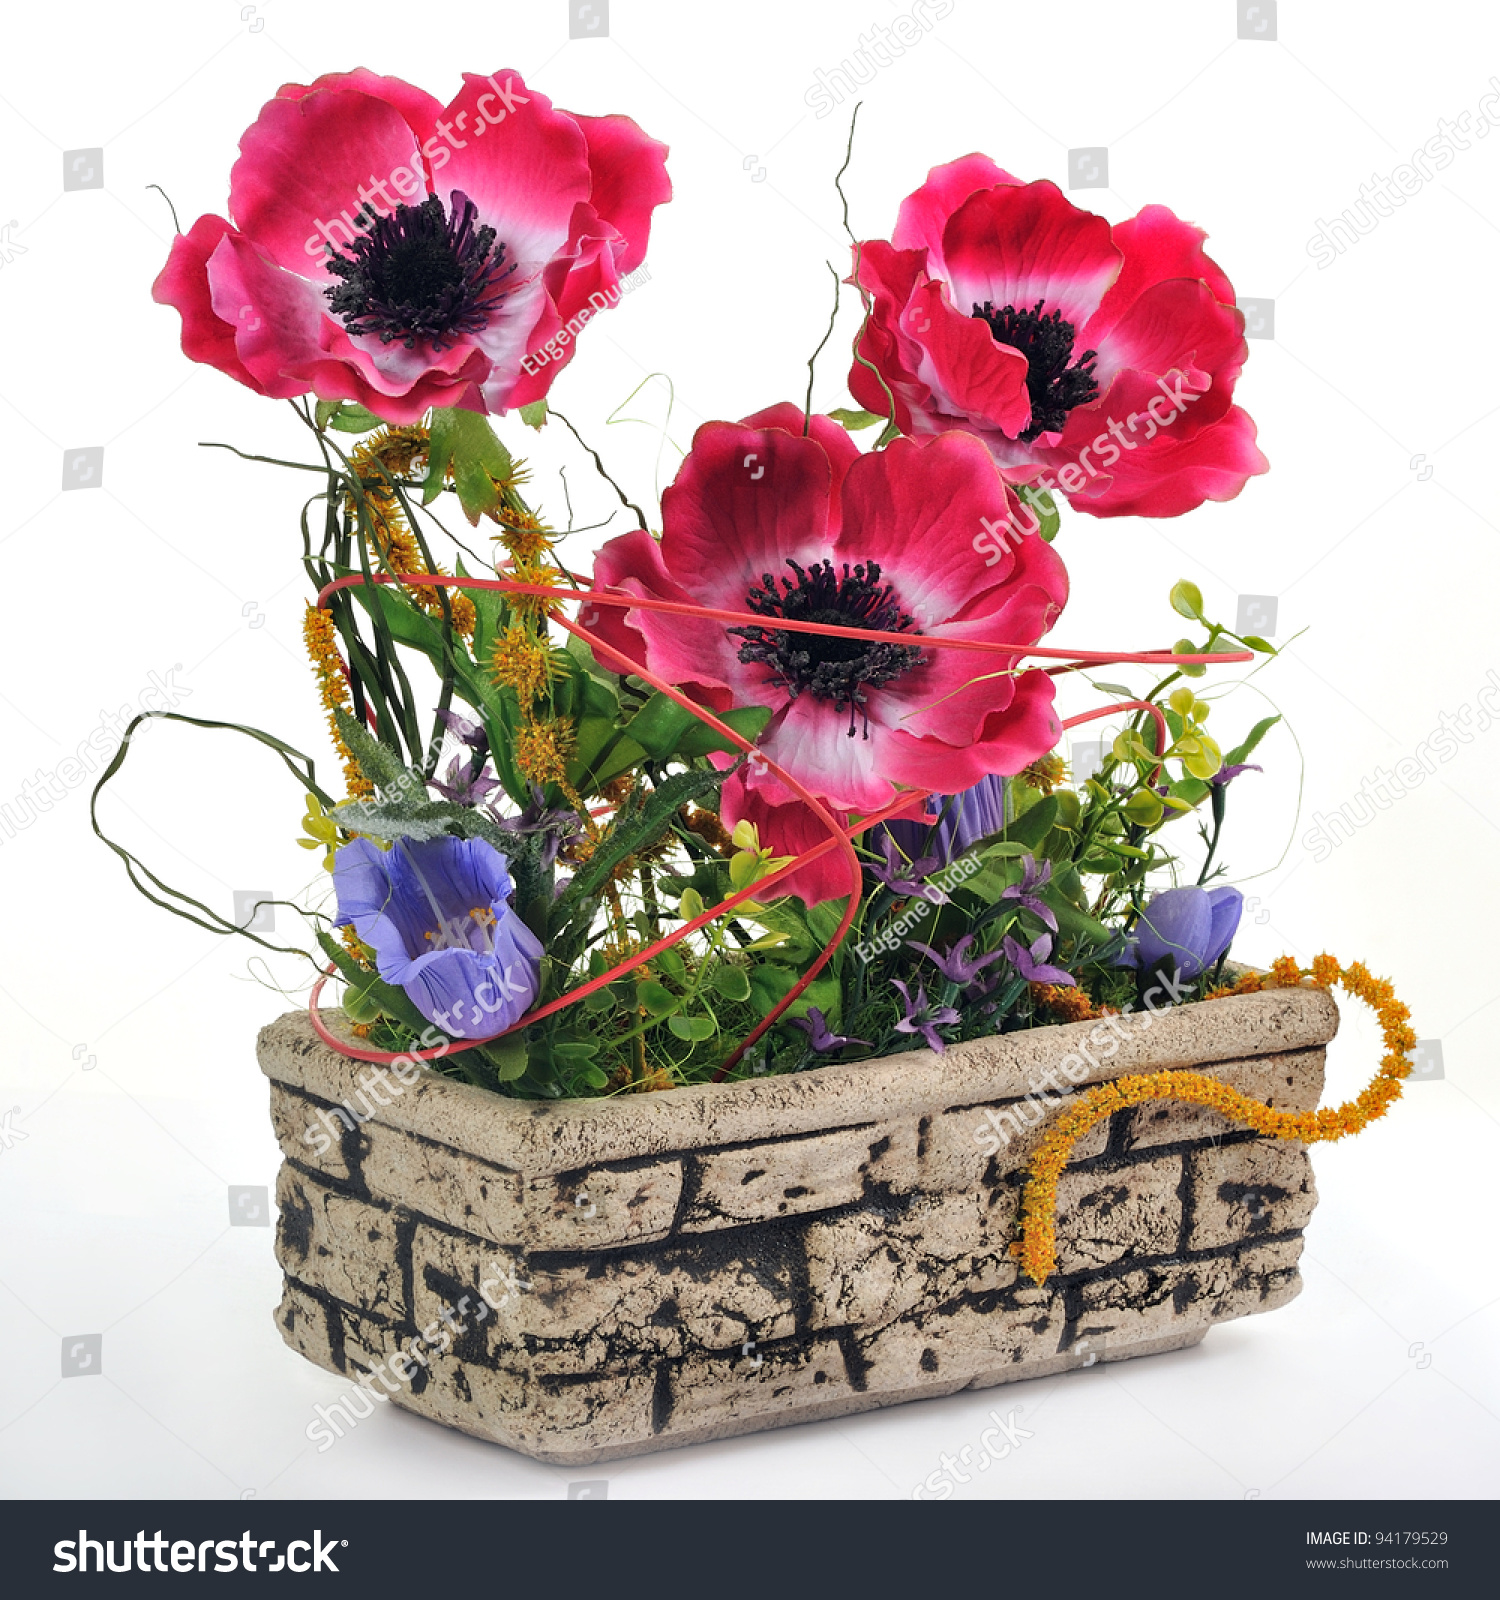 Flower Pots With Artificial Flowers Stock Photo Flower Pot With Artificial Flowers